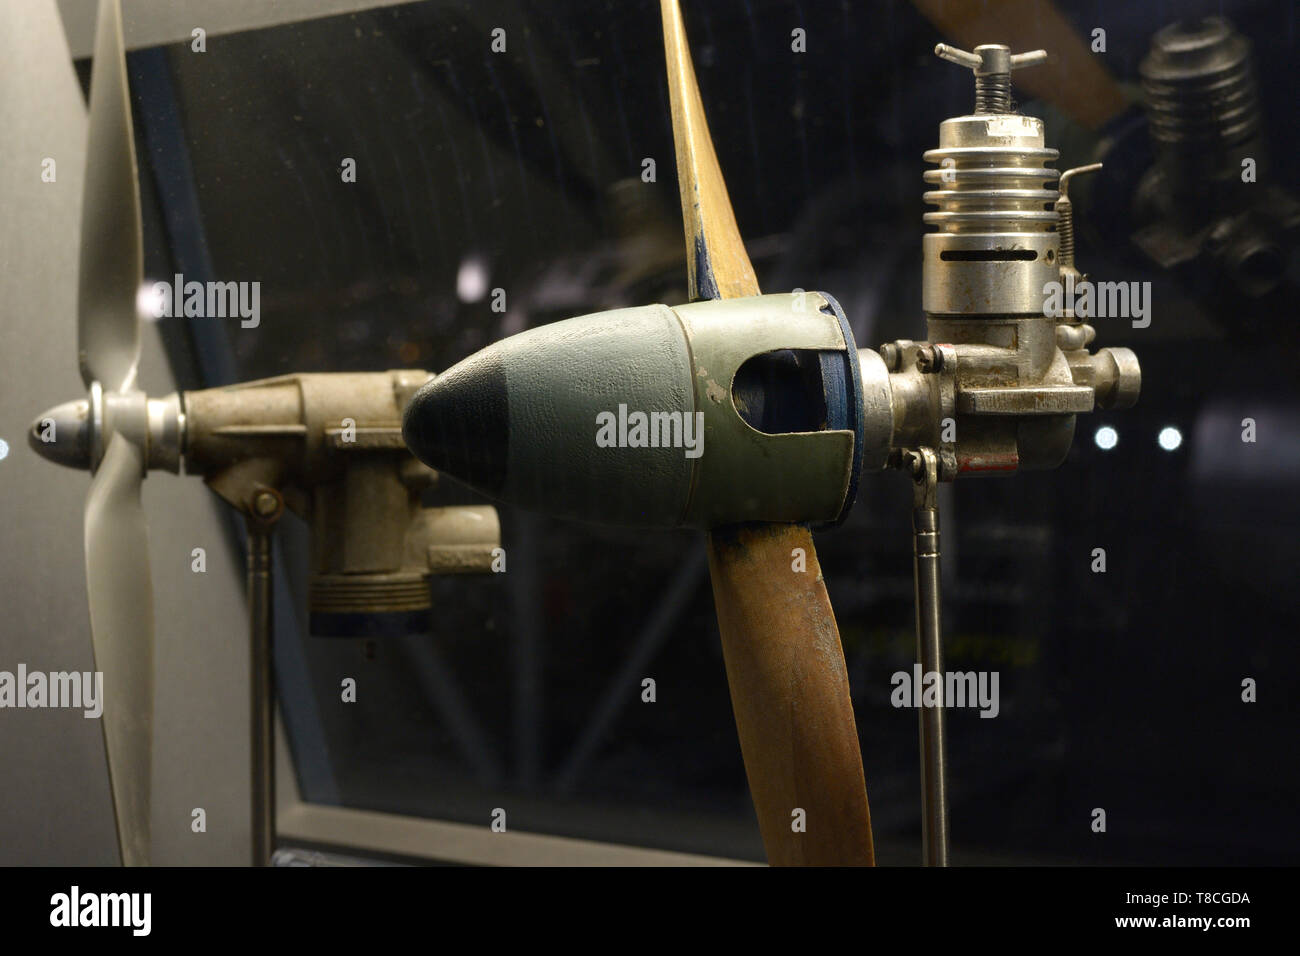 An aircraft modelling engine set on a stand. Festival Old Car Land. May 12, 2019. KIev, Ukraine - Stock Image